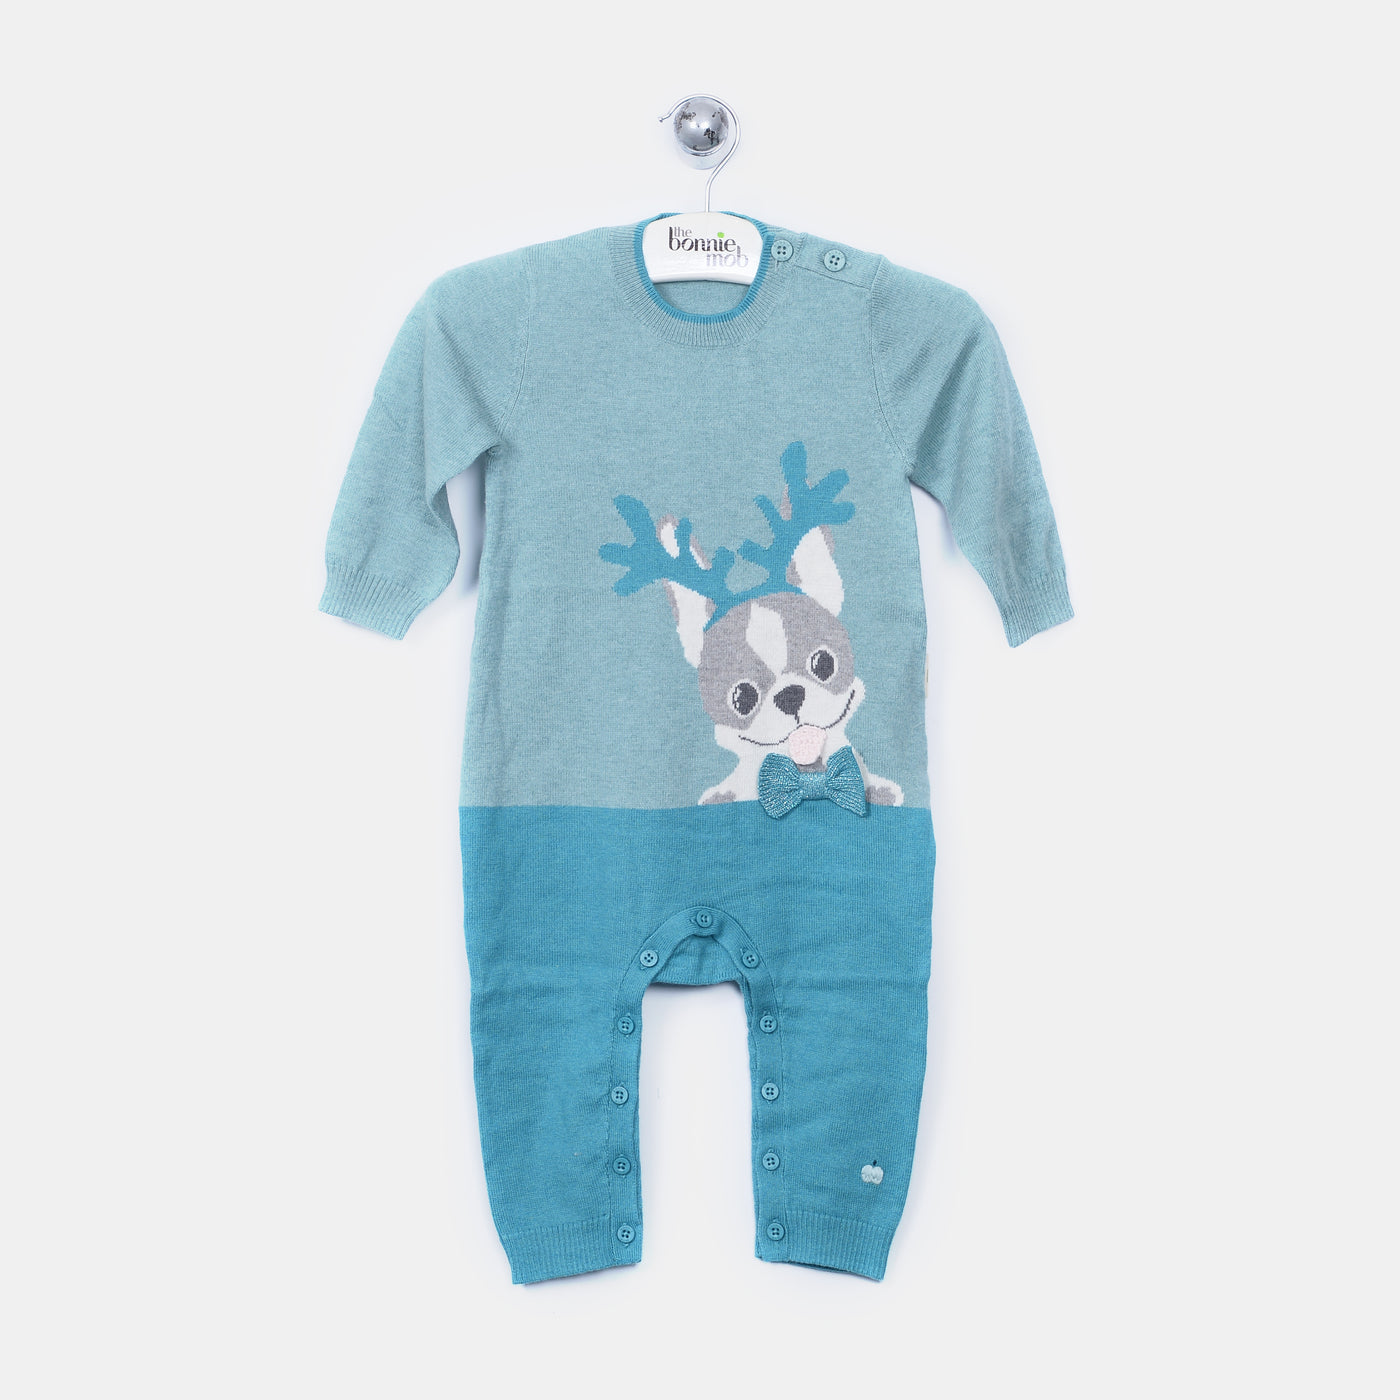 L-REEGAN - Reindeer Dog Playsuit - Baby Boy - Cloudy jade